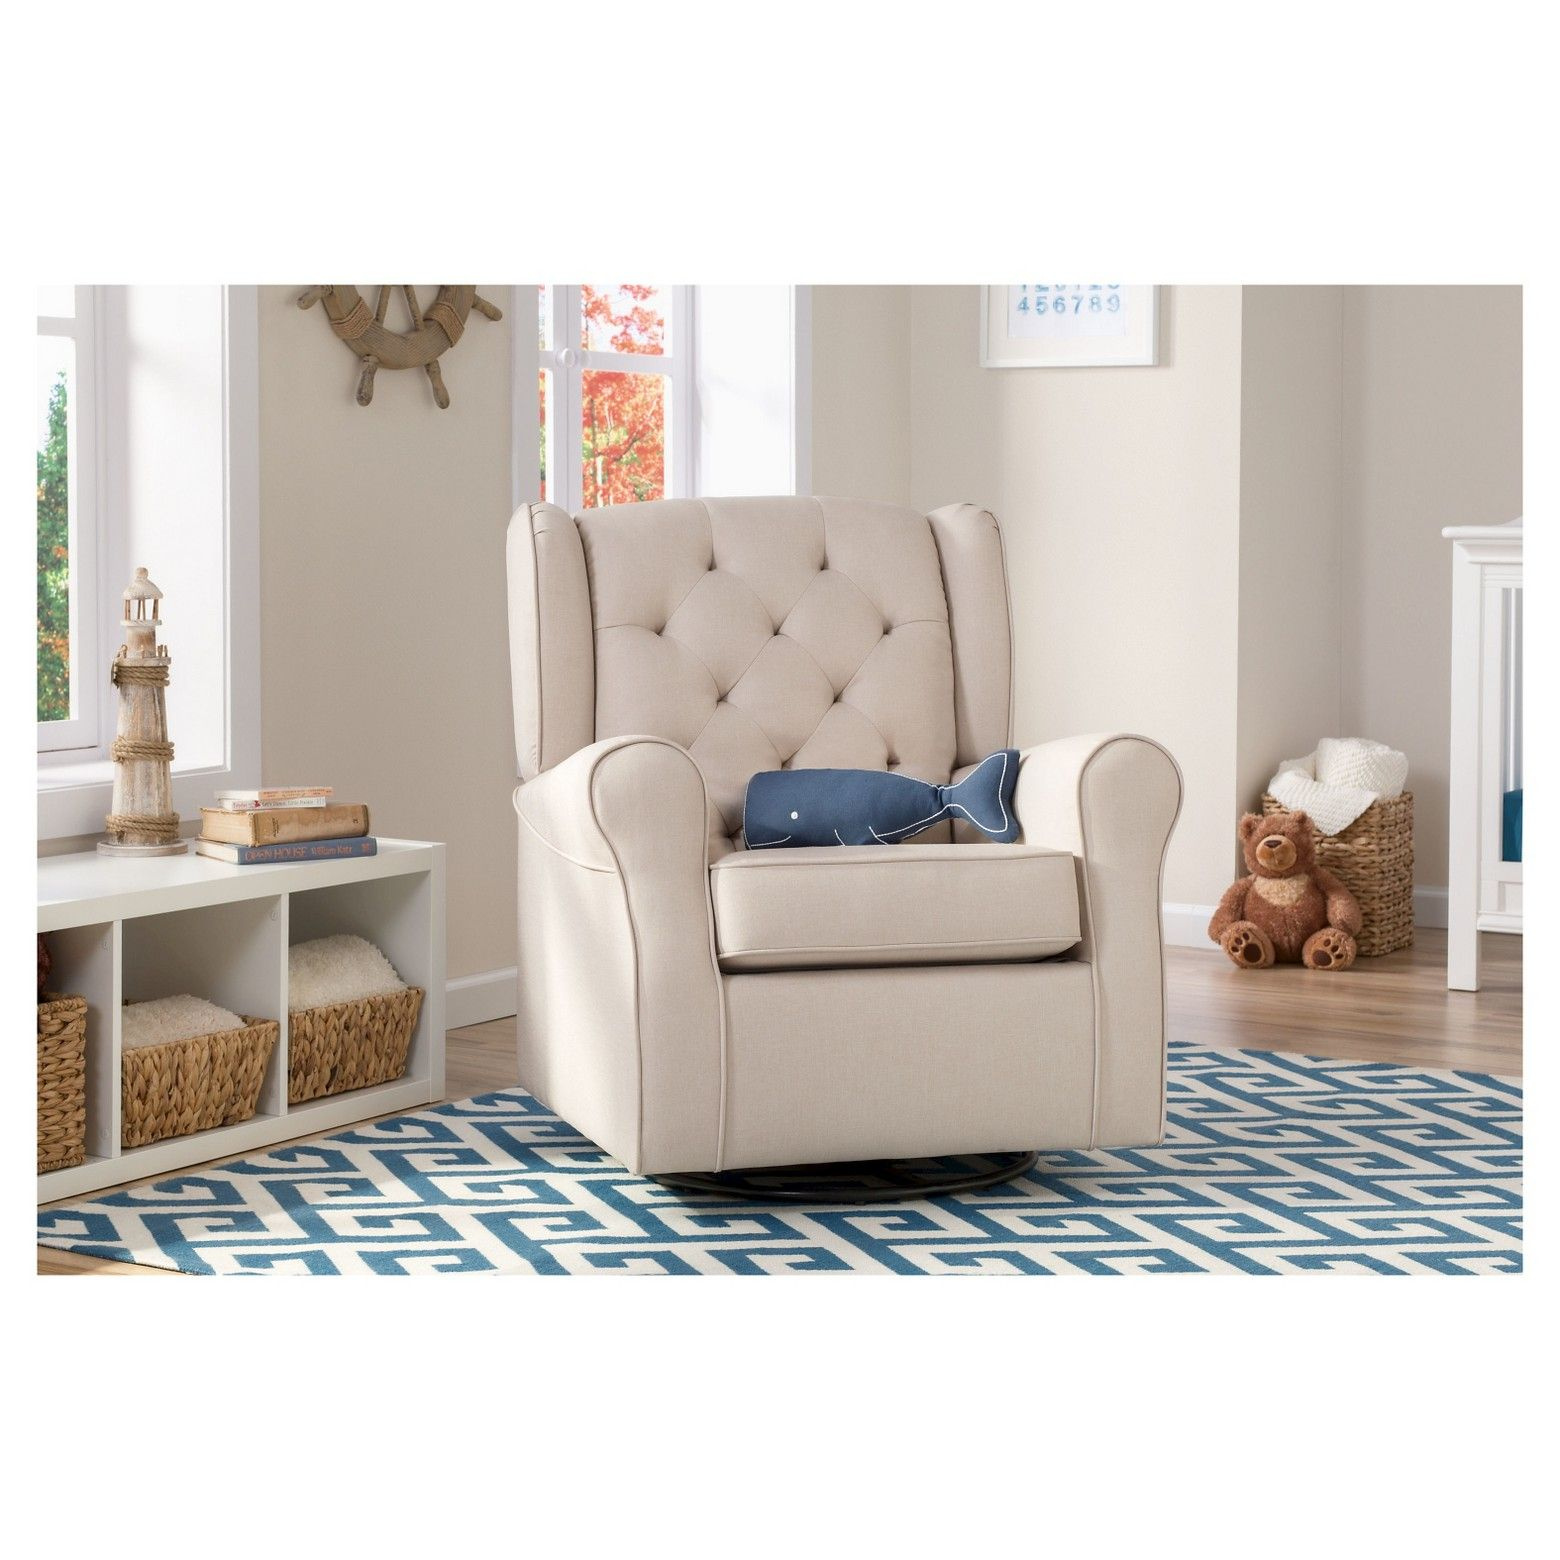 Durable fabric that s easy to clean br • Tufted with piped edges br